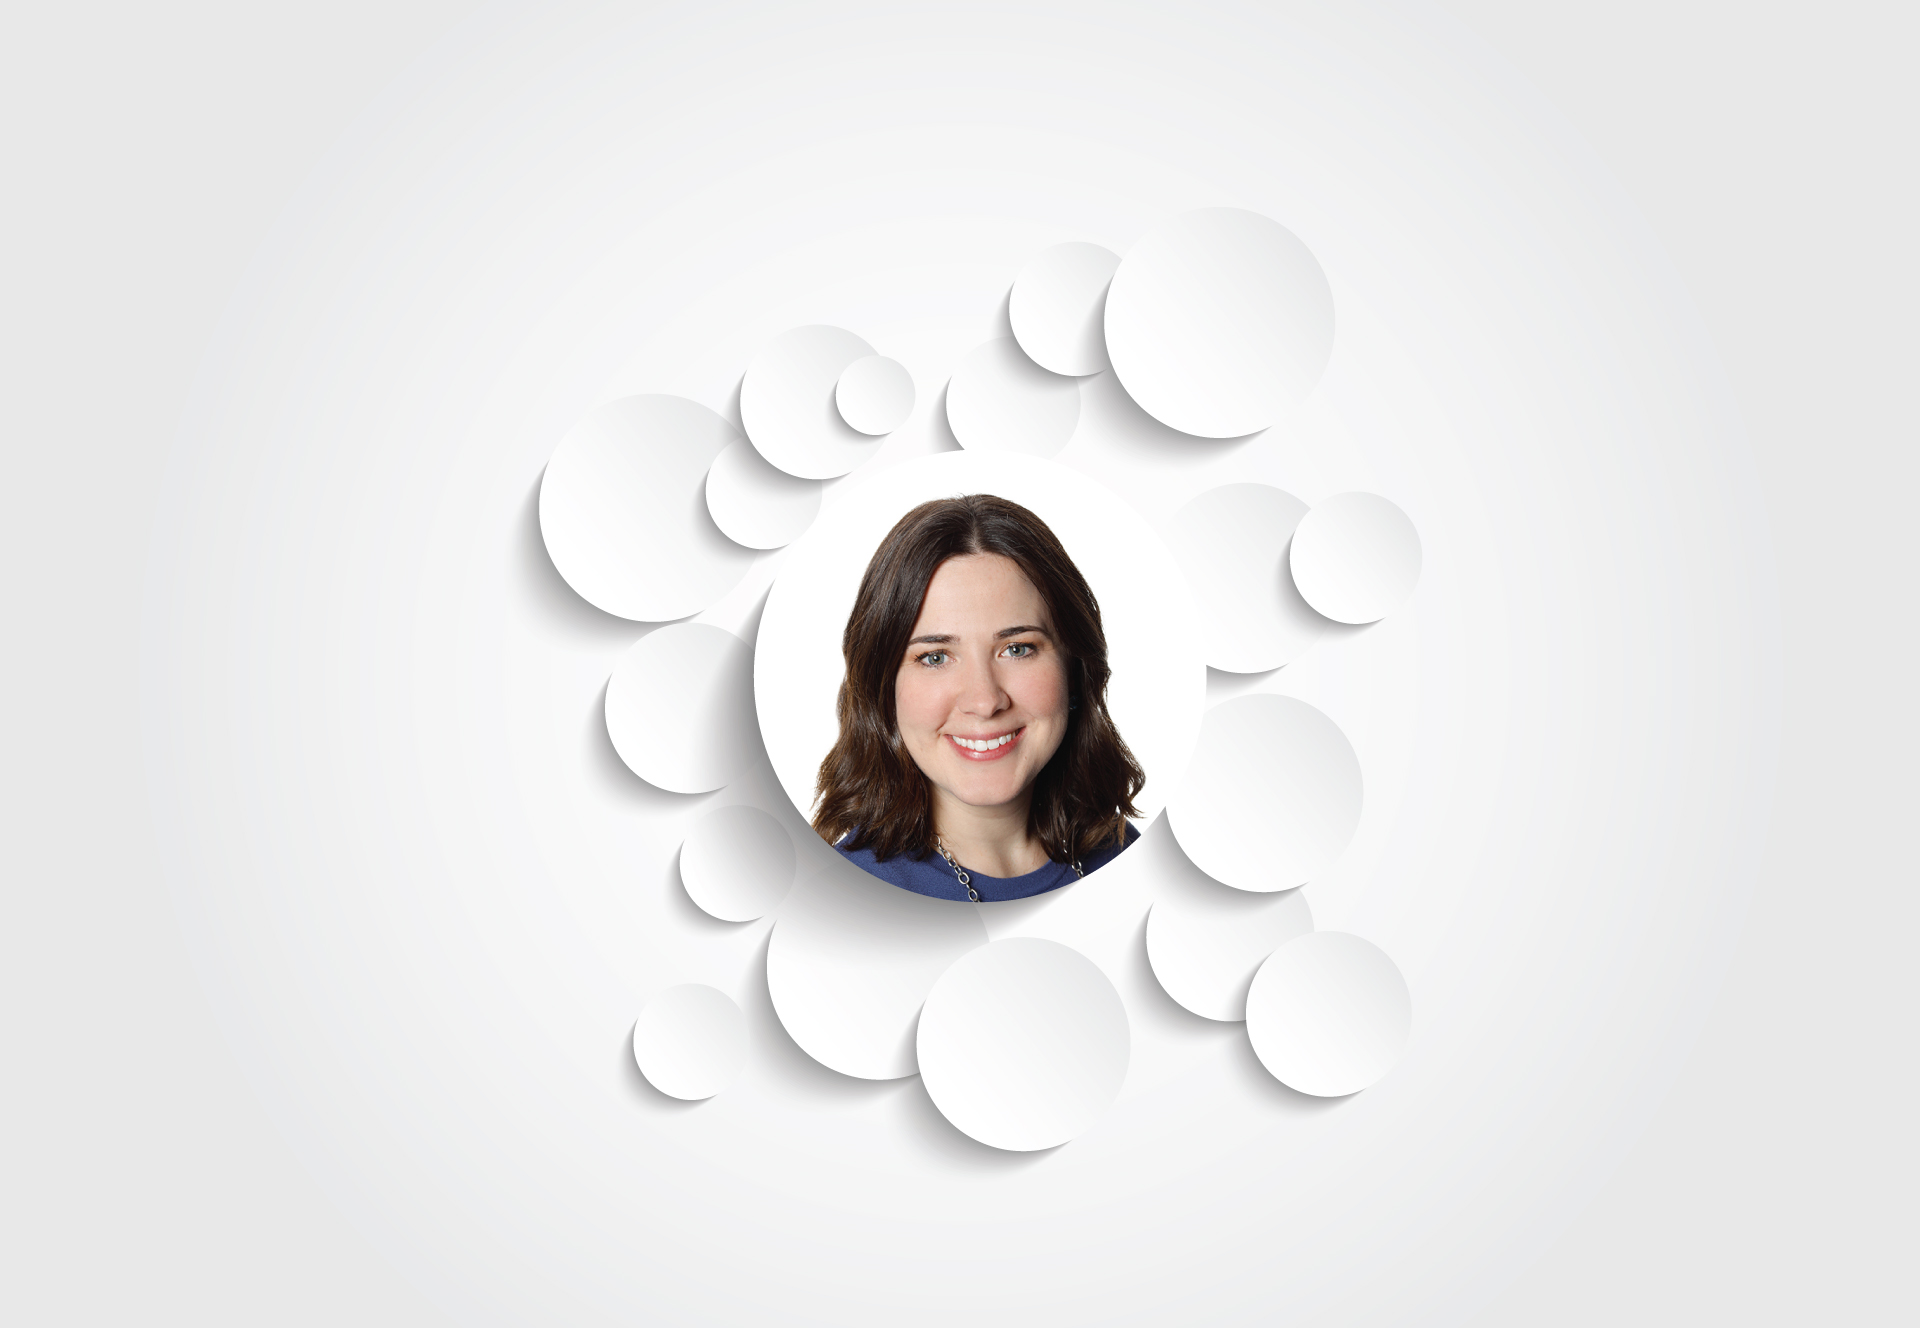 Partner Spotlight: Melissa Mulholland, Microsoft Partner Cloud Profitability Lead